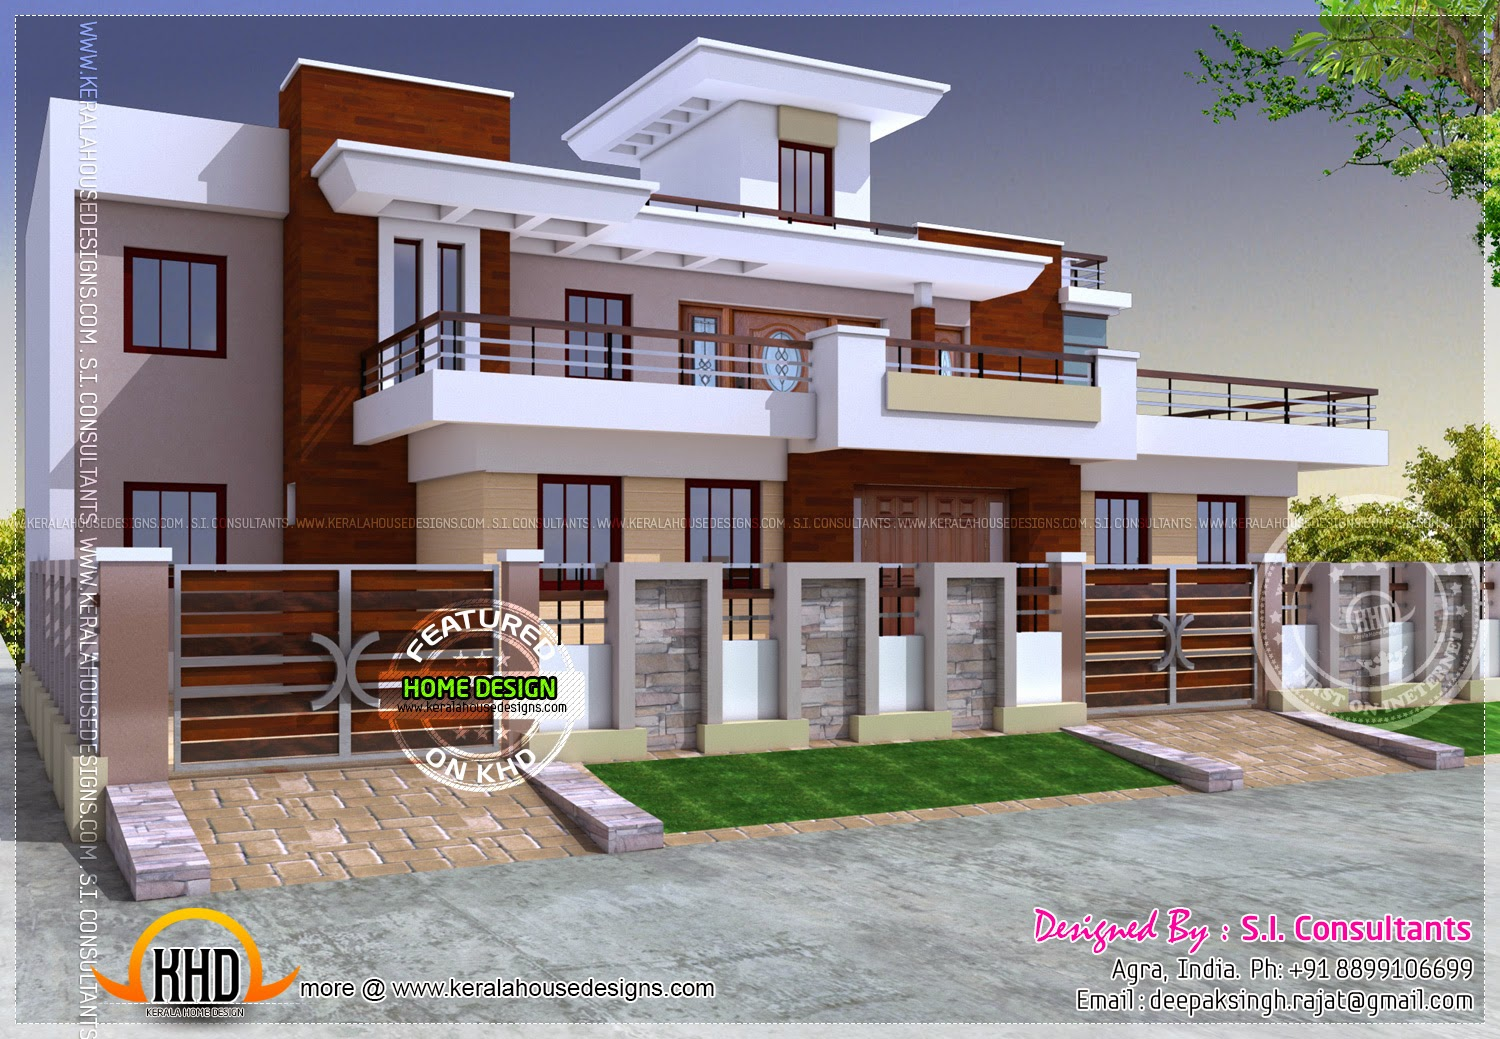 Modern style india house plan kerala home design and for Small house design plans in india image